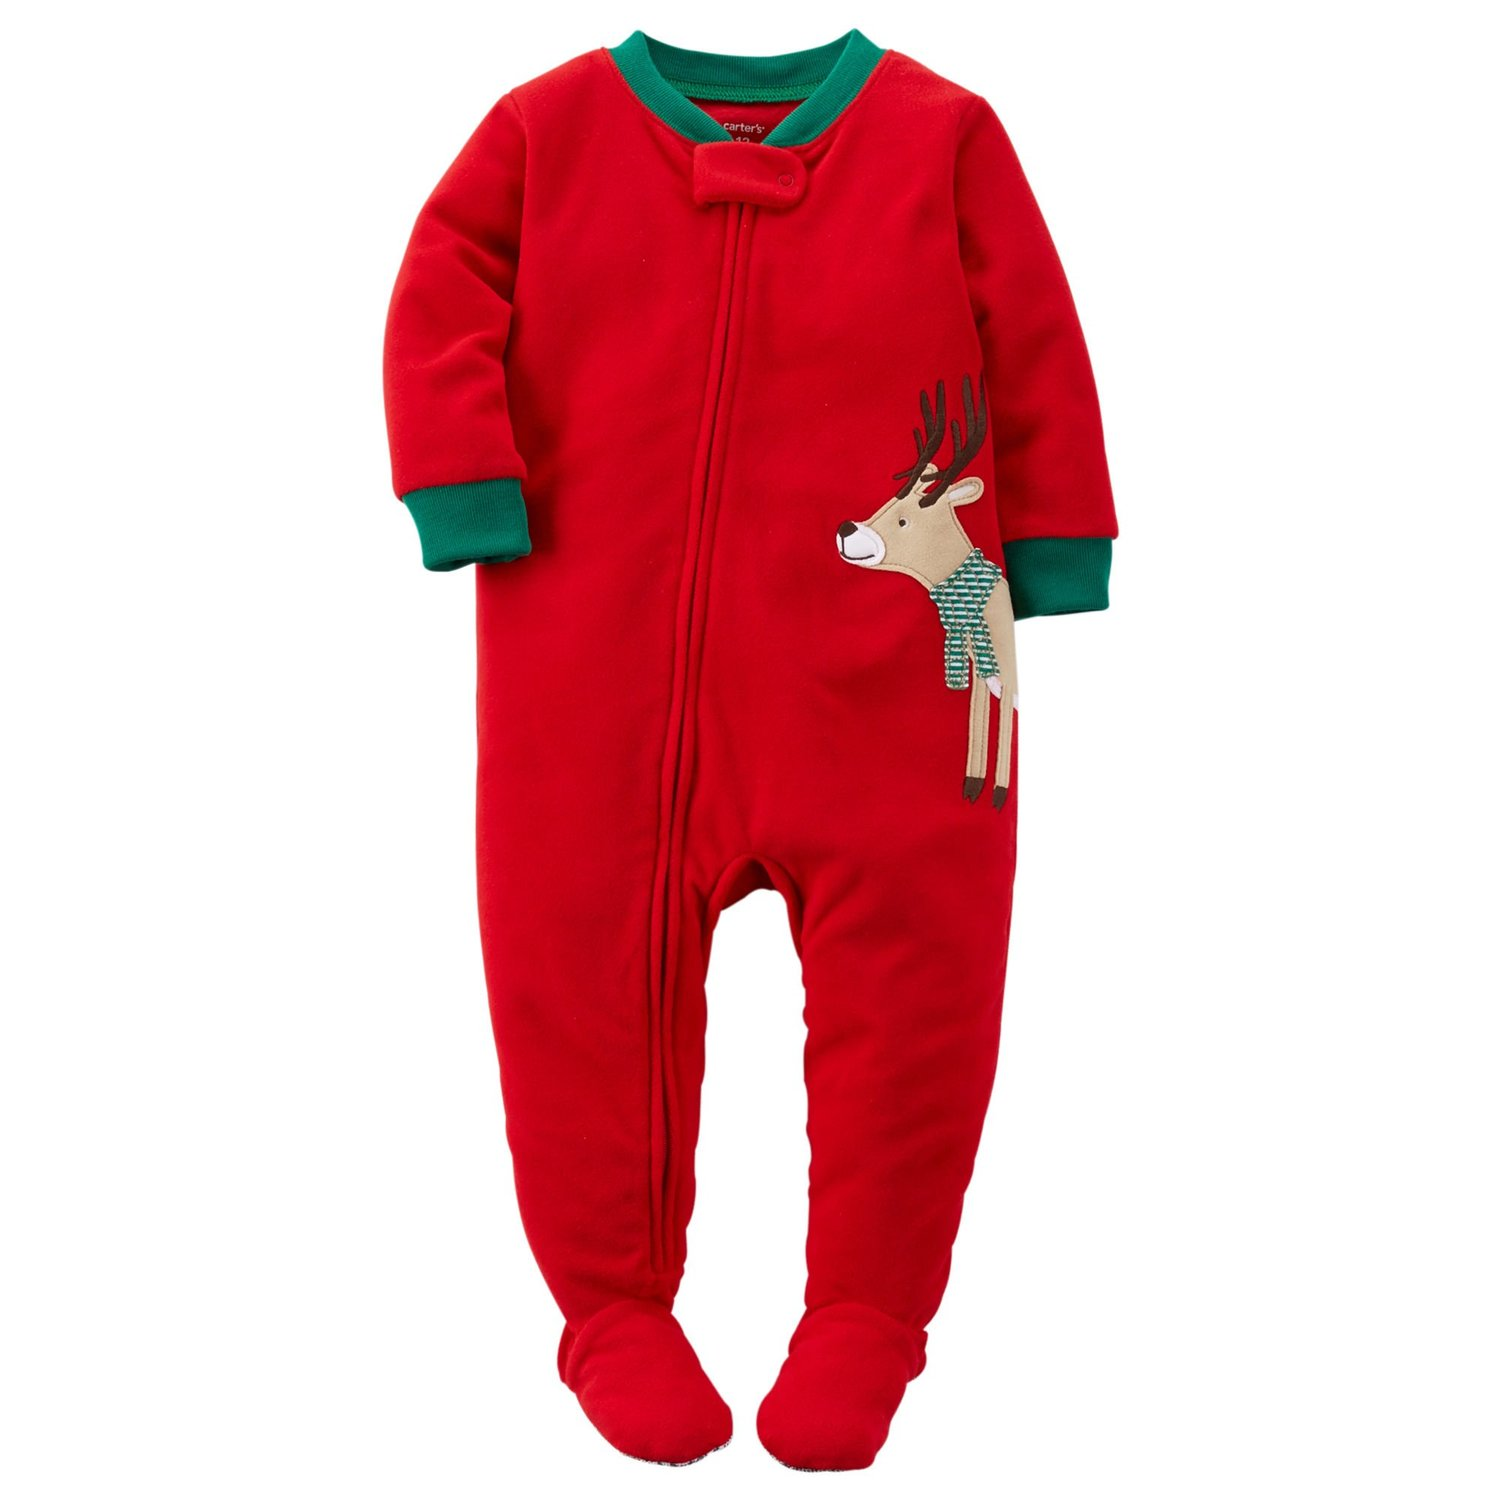 Carters Footed Pajamas Breeze Clothing